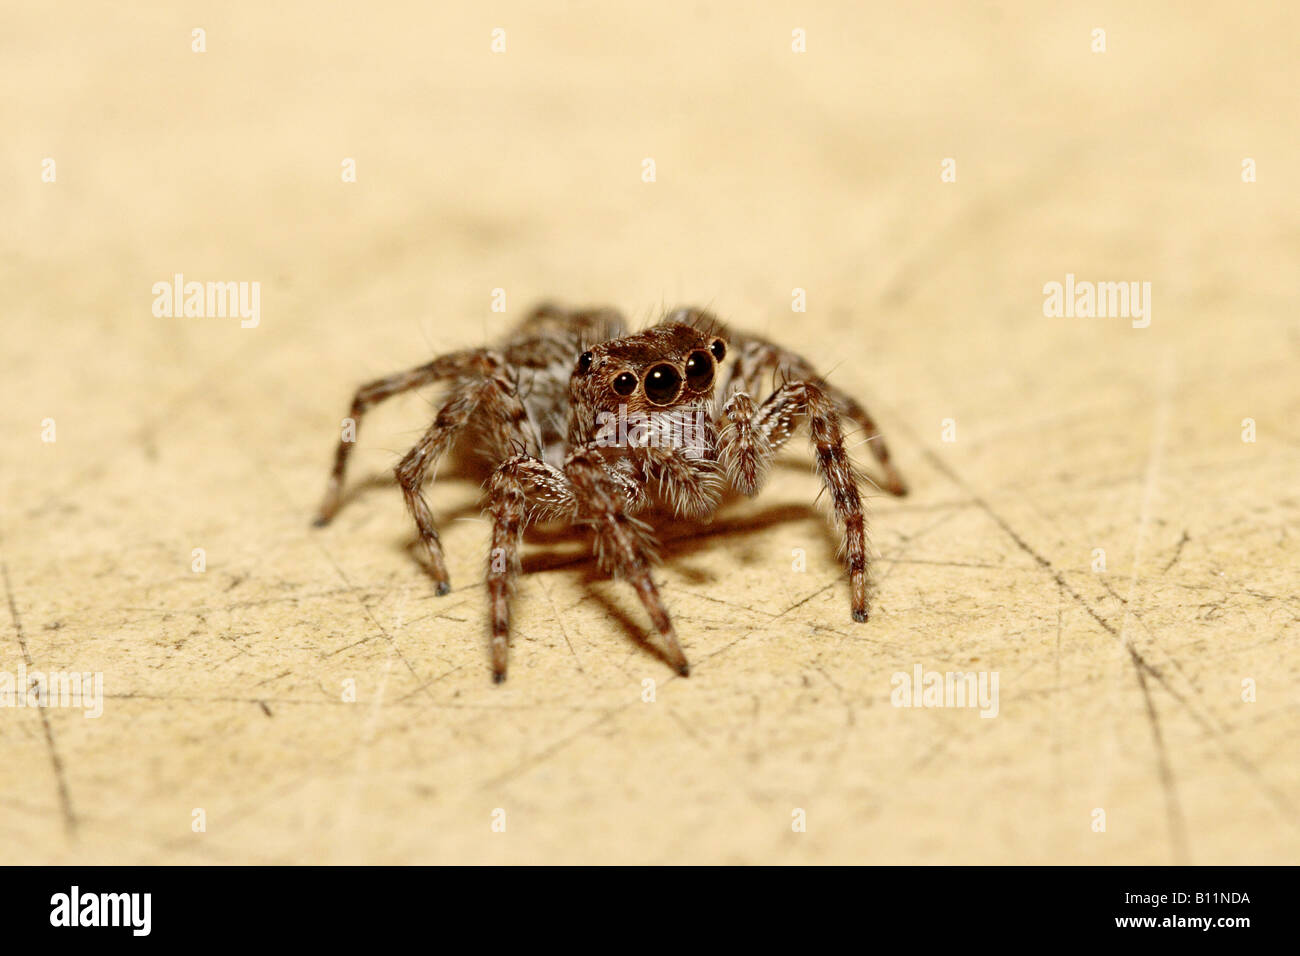 Jumping spider close up - Stock Image